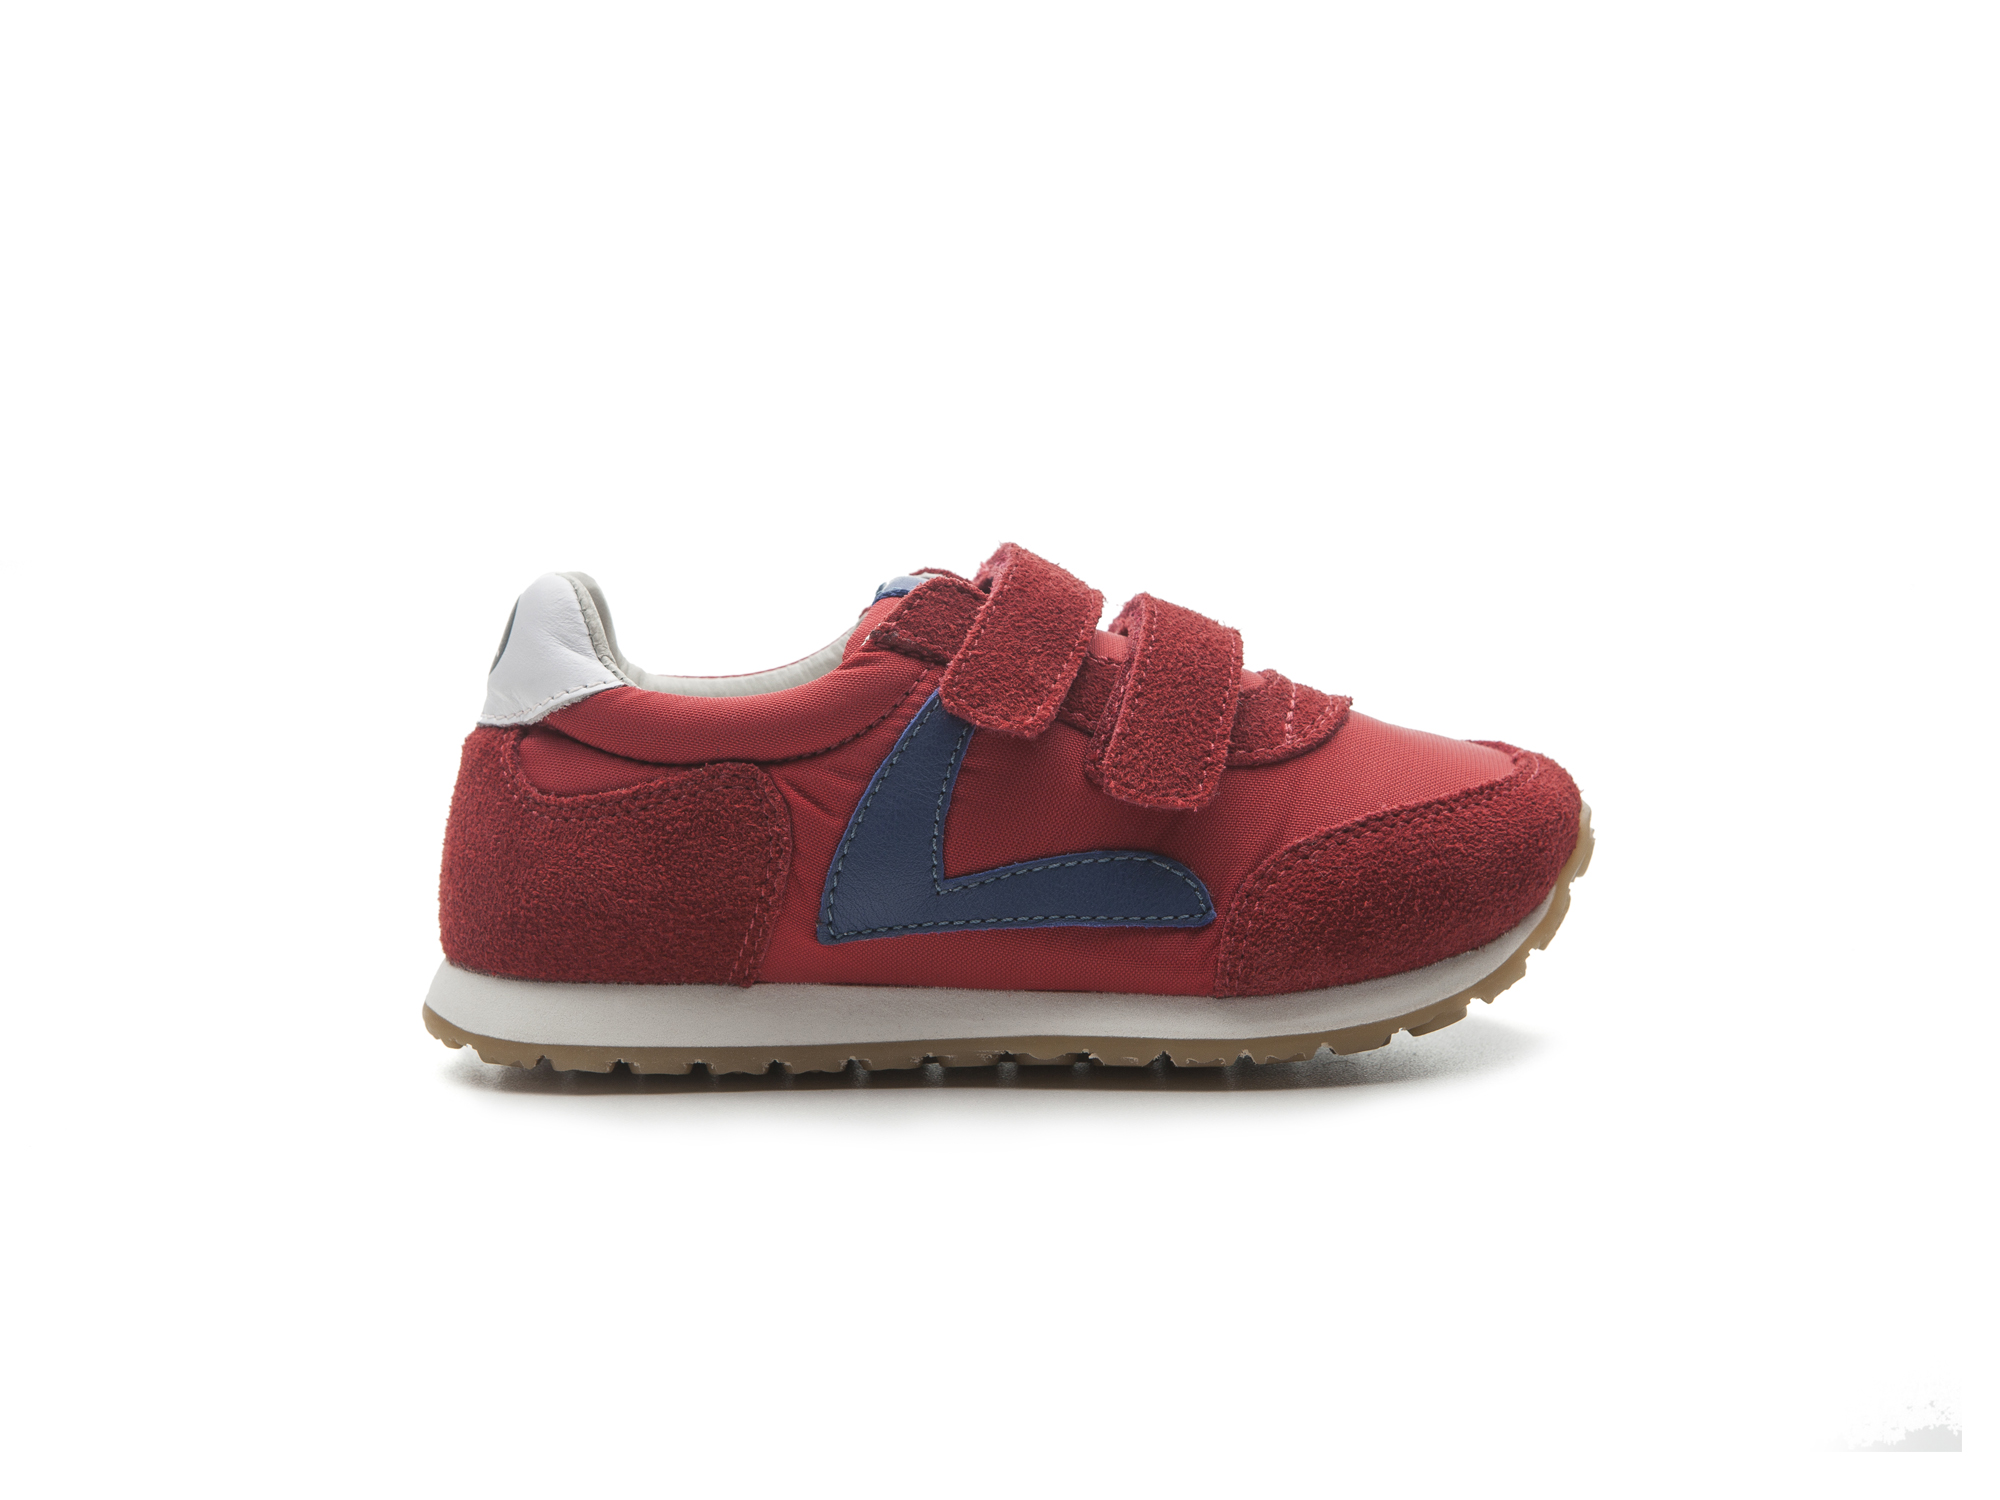 Tênis Jump Red Nylon/ Red Suede Junior 4 à 8 anos - 0